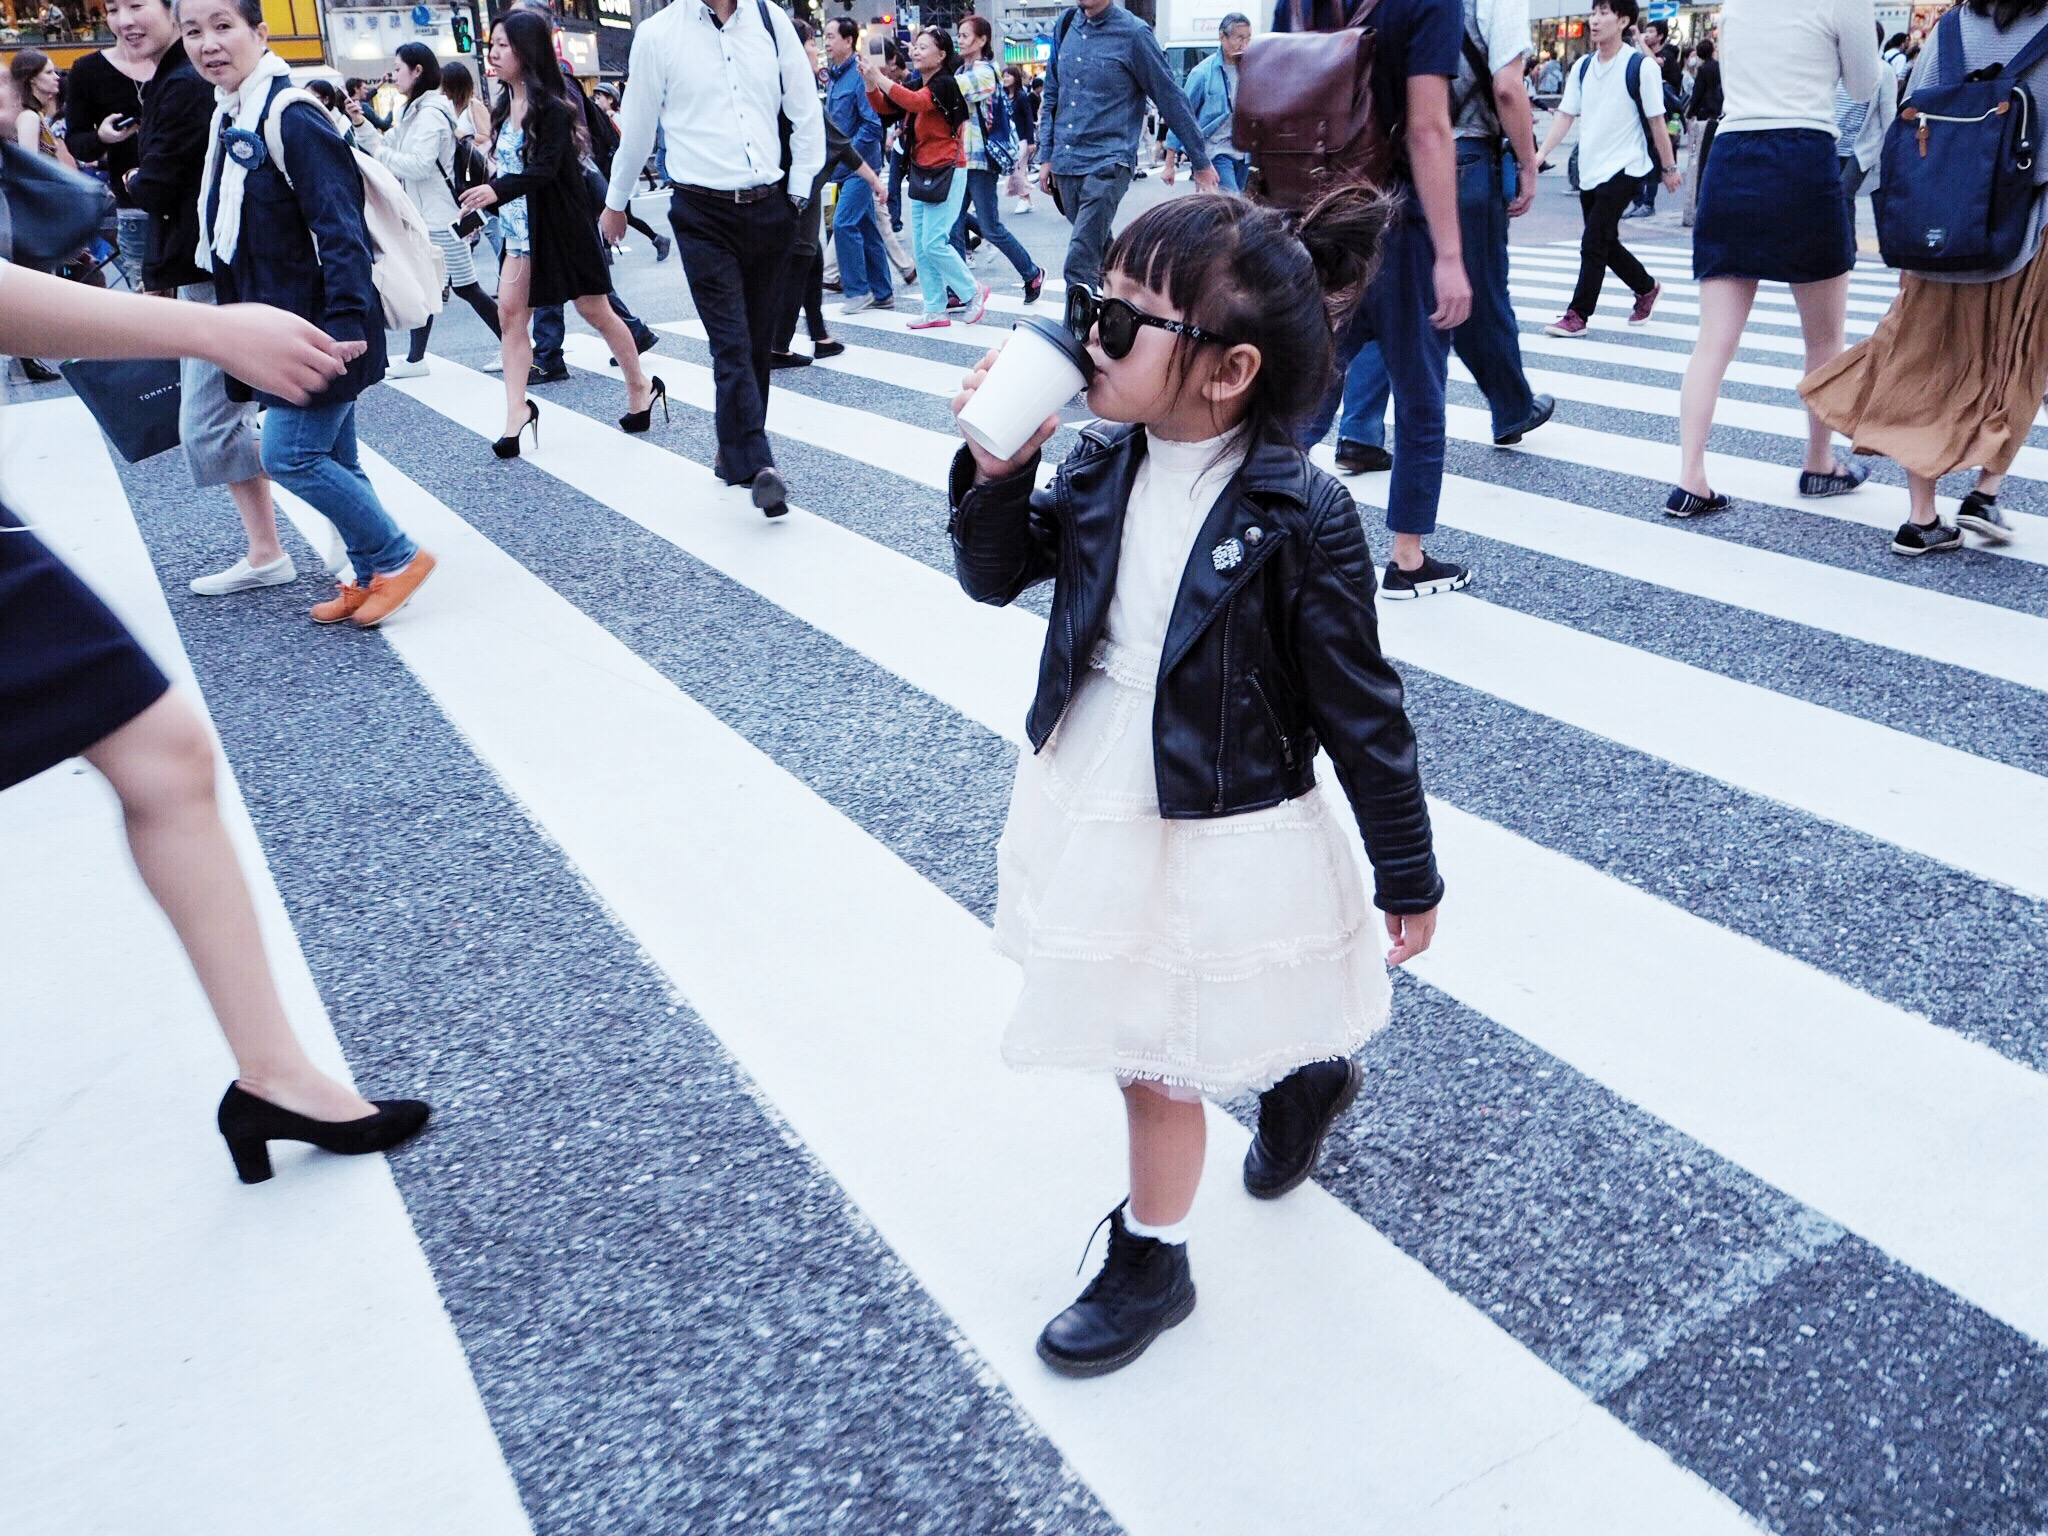 SHIBUYA CROSSING: Dress: H&M Studio Collection, Jacket:  Eve JNR , Boots: Dr. Martens